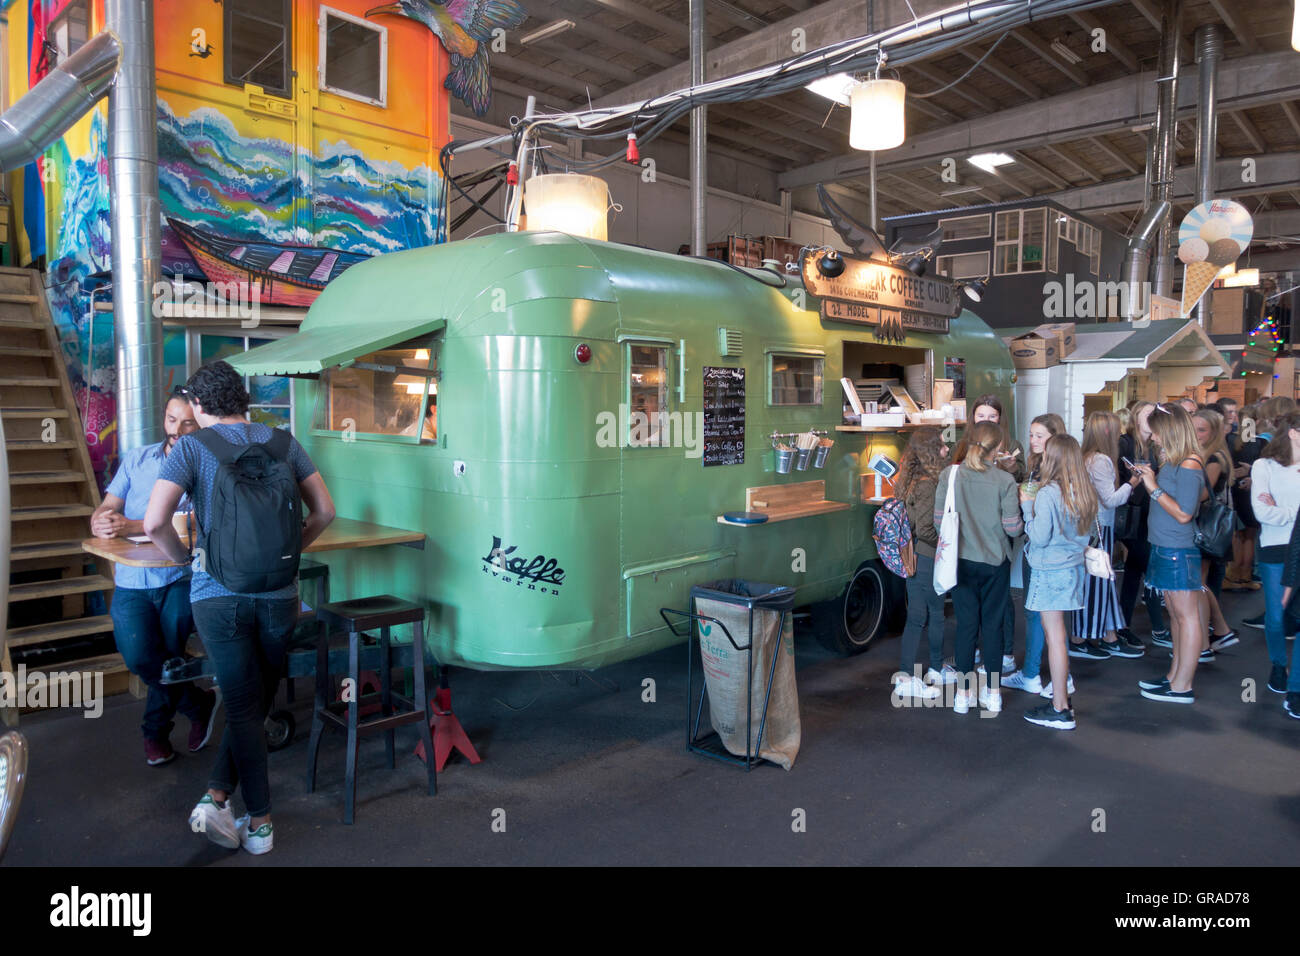 Silver Streak Coffee Club coffee stall in he new eatery and first real street food market Papirøen, Paper Island. - Stock Image